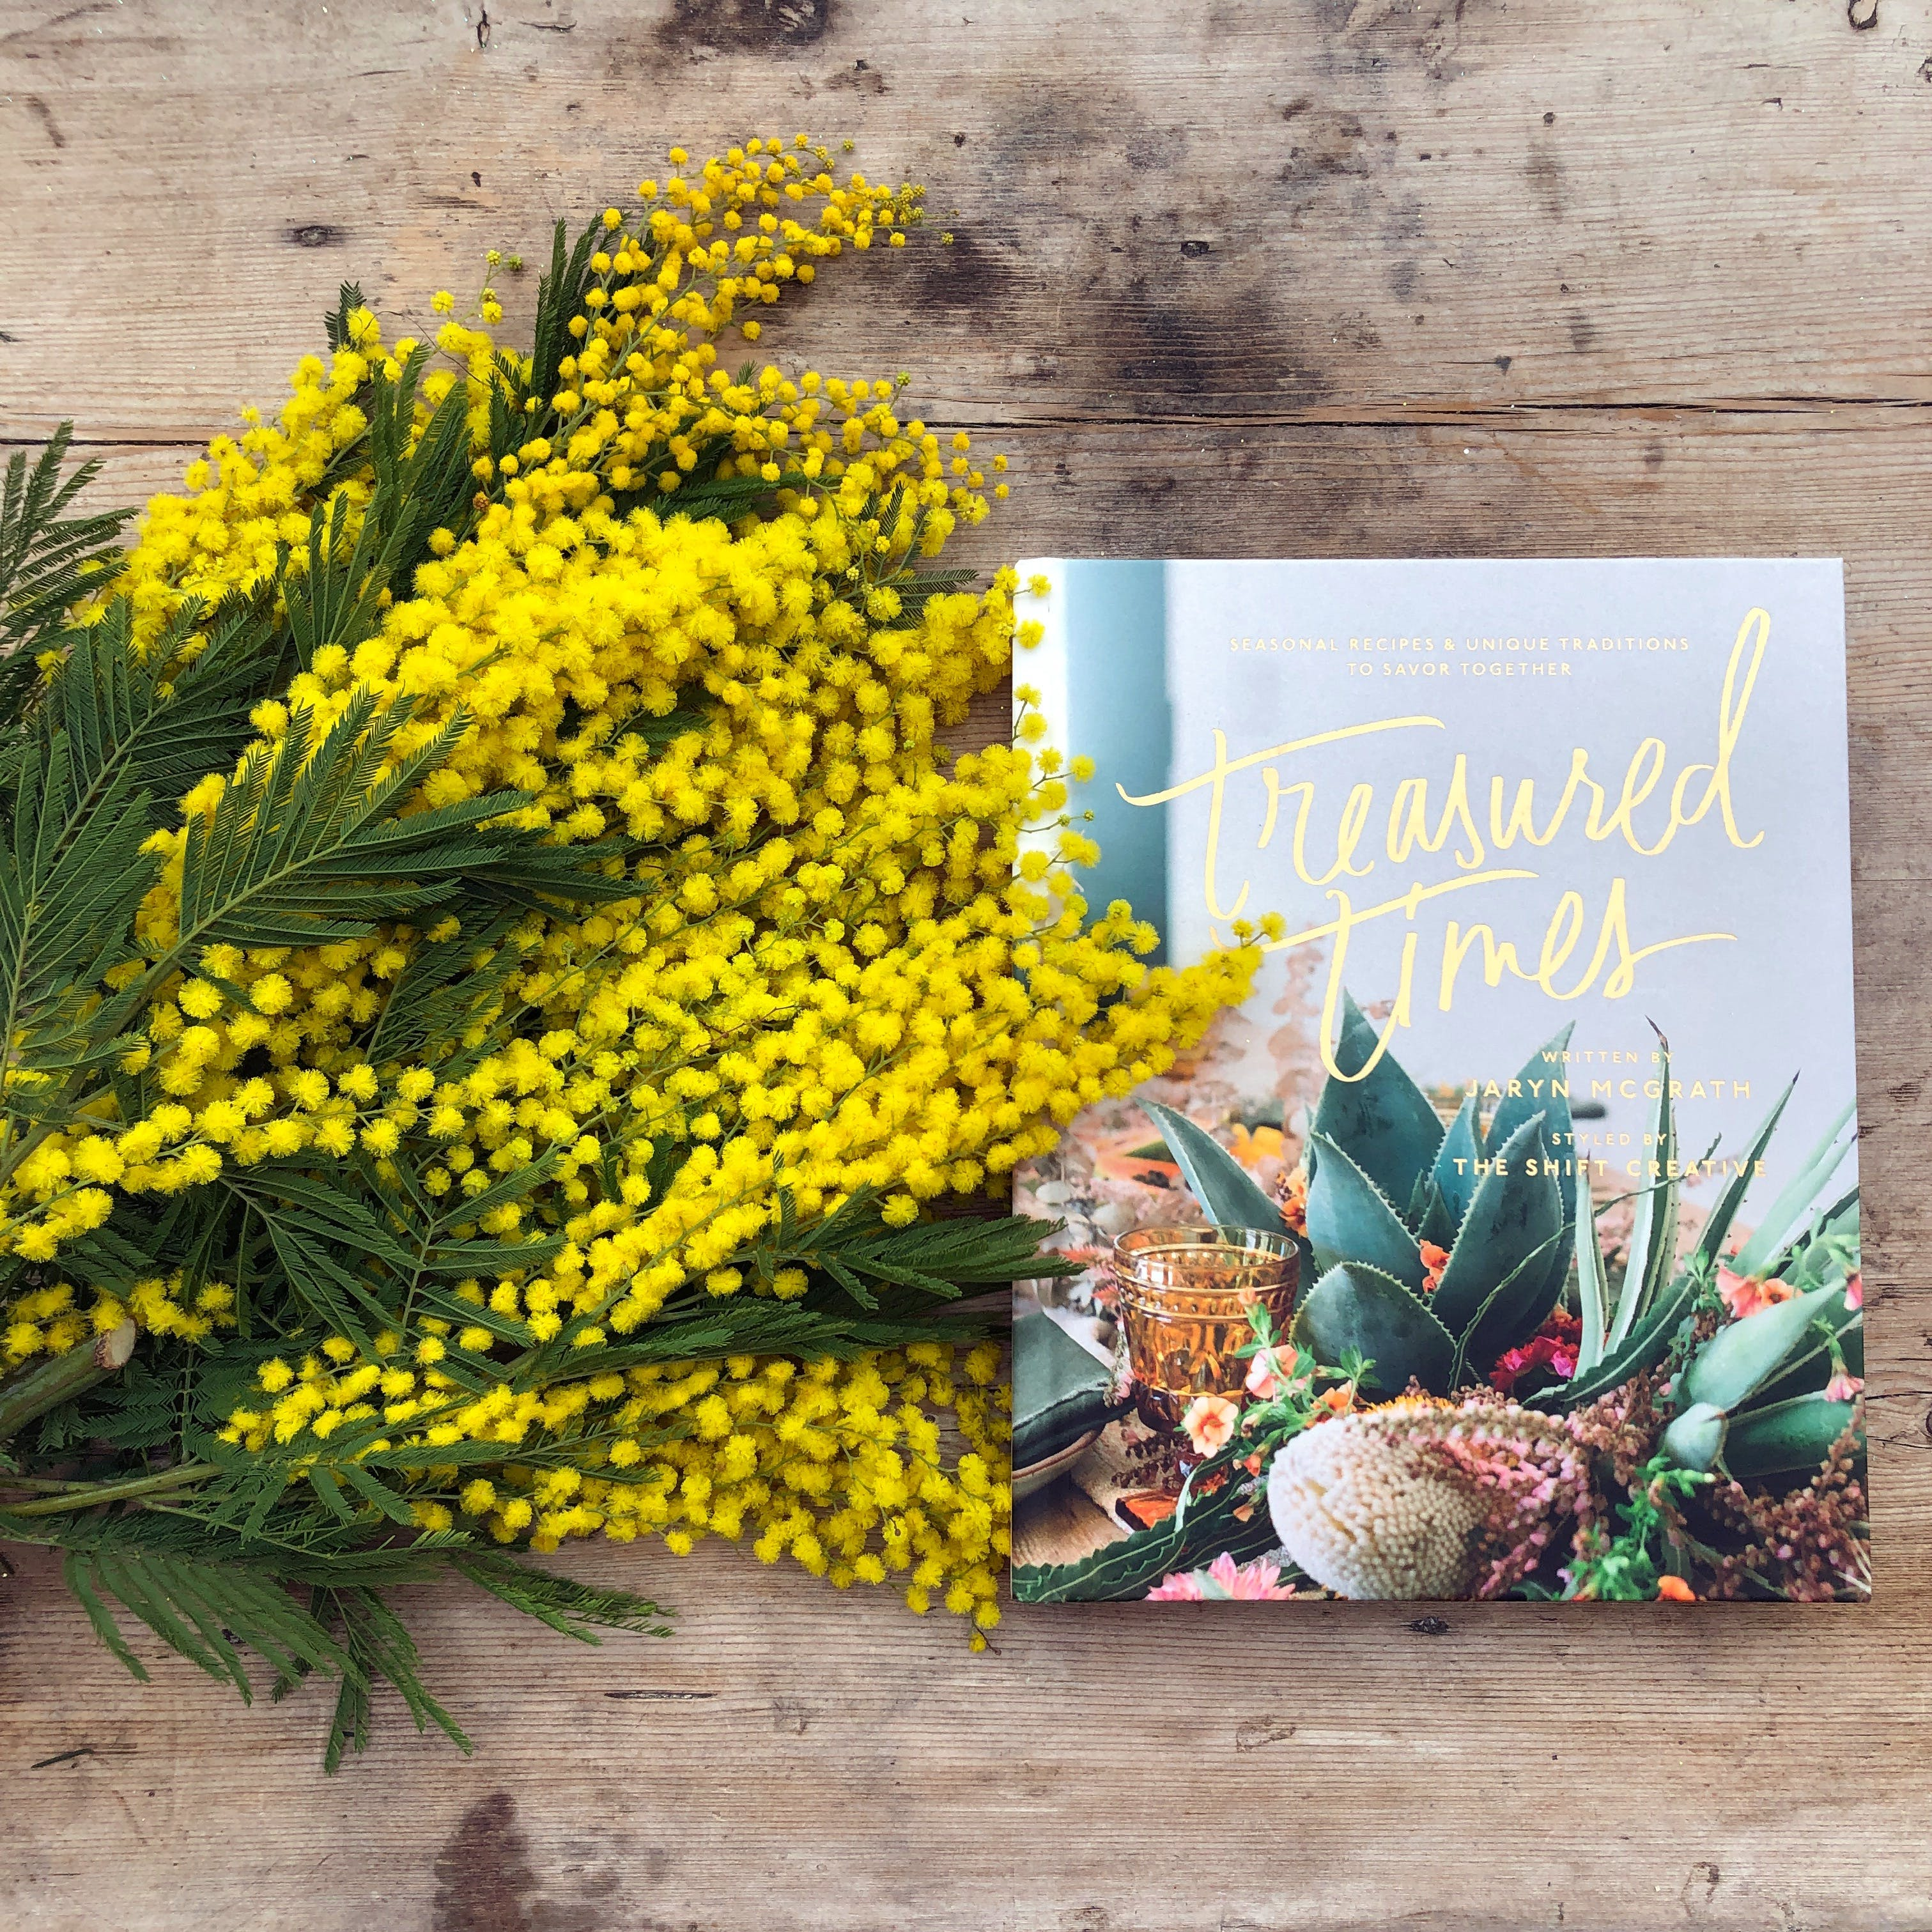 This week's book of the week is a beautiful, seasonal book to celebrate the whole year